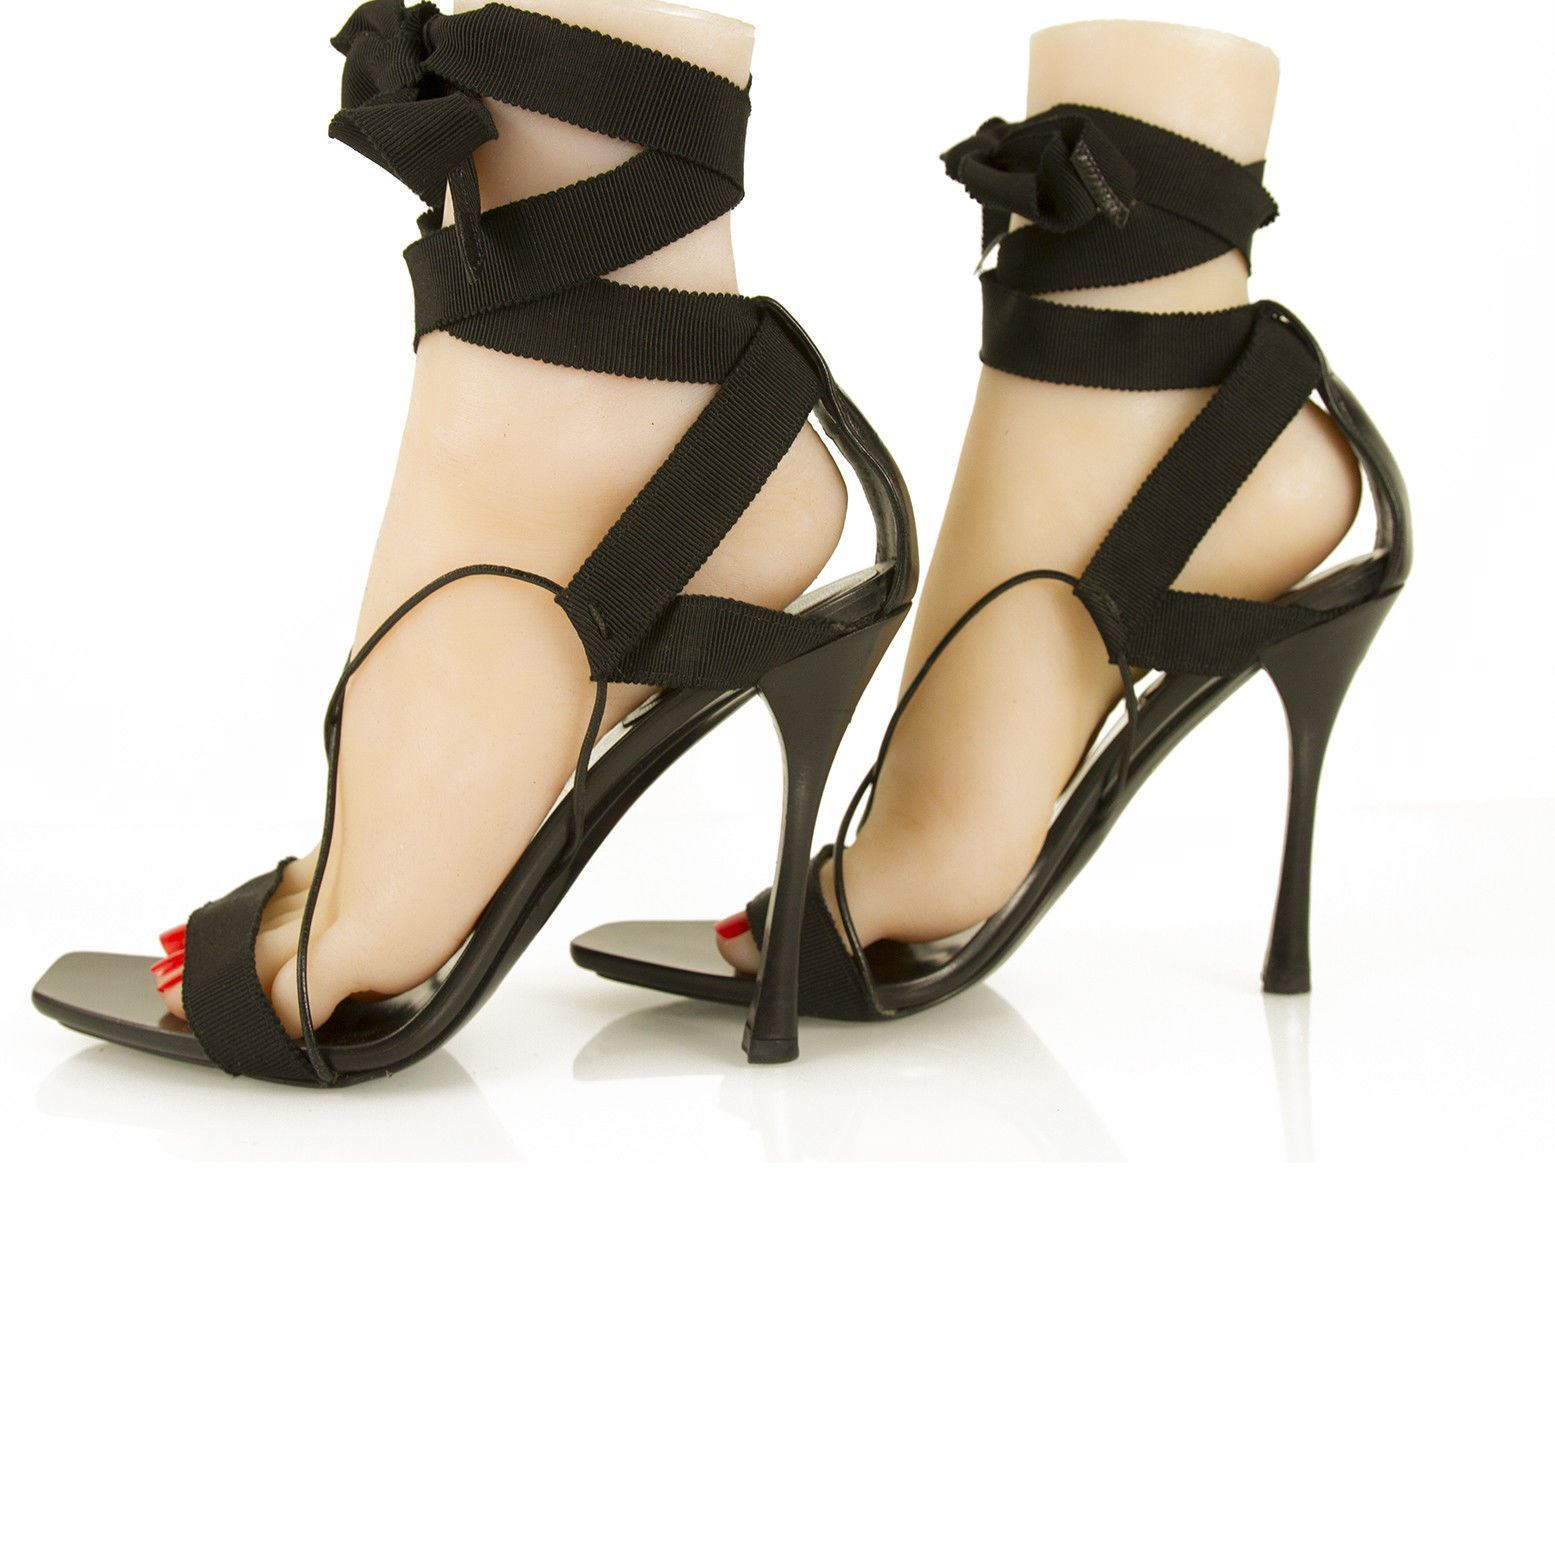 e21b7219ff2e Tom Ford For Gucci Black Ankle Tie Strappy High Heel Sandals Shoes sz 39.5 C